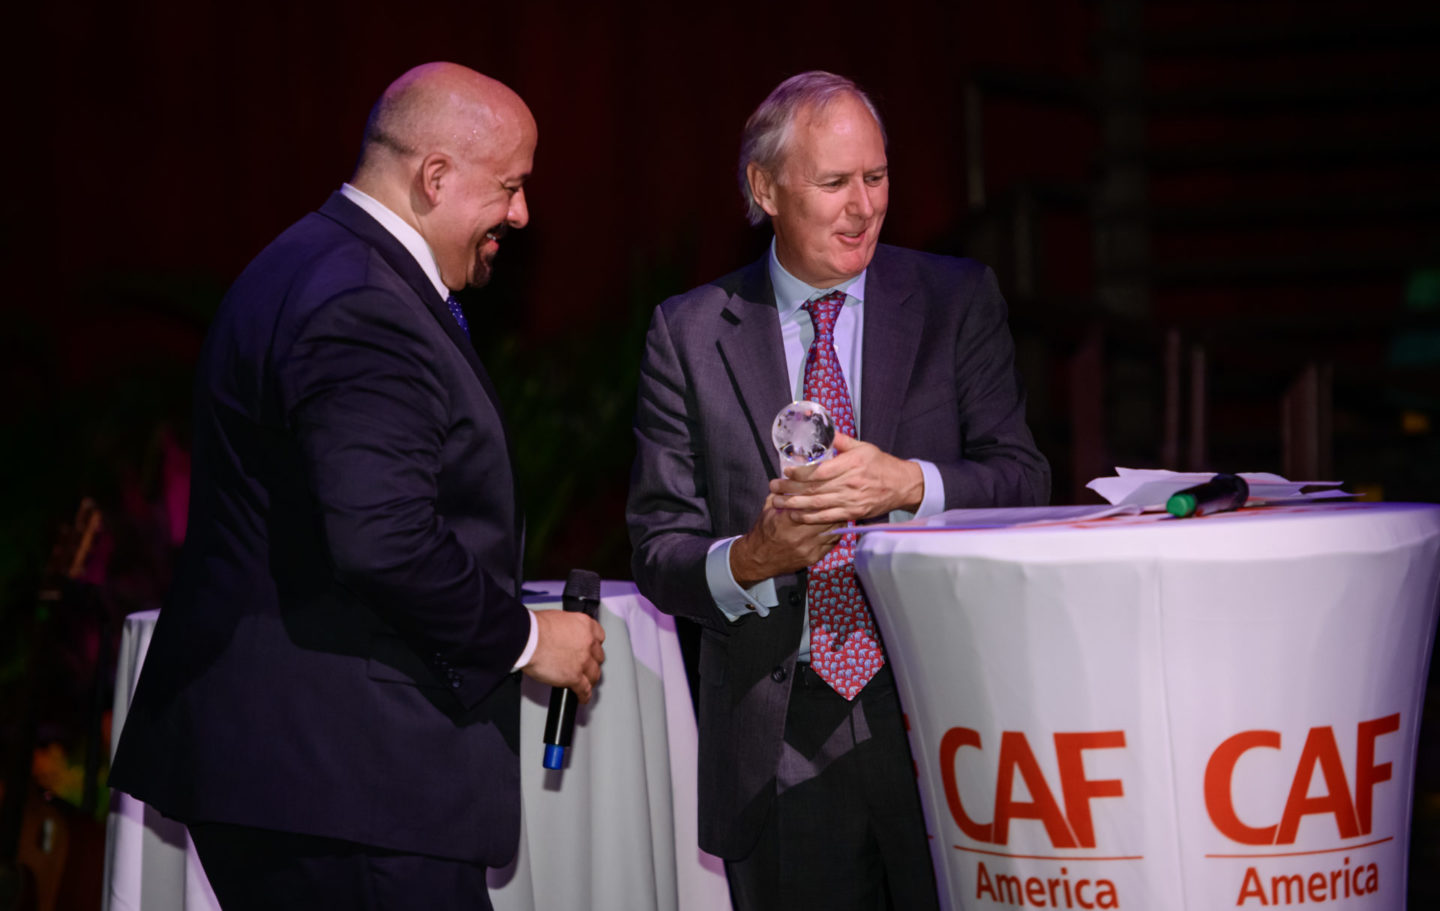 Tusk Wins CAF America International Philanthropy Award